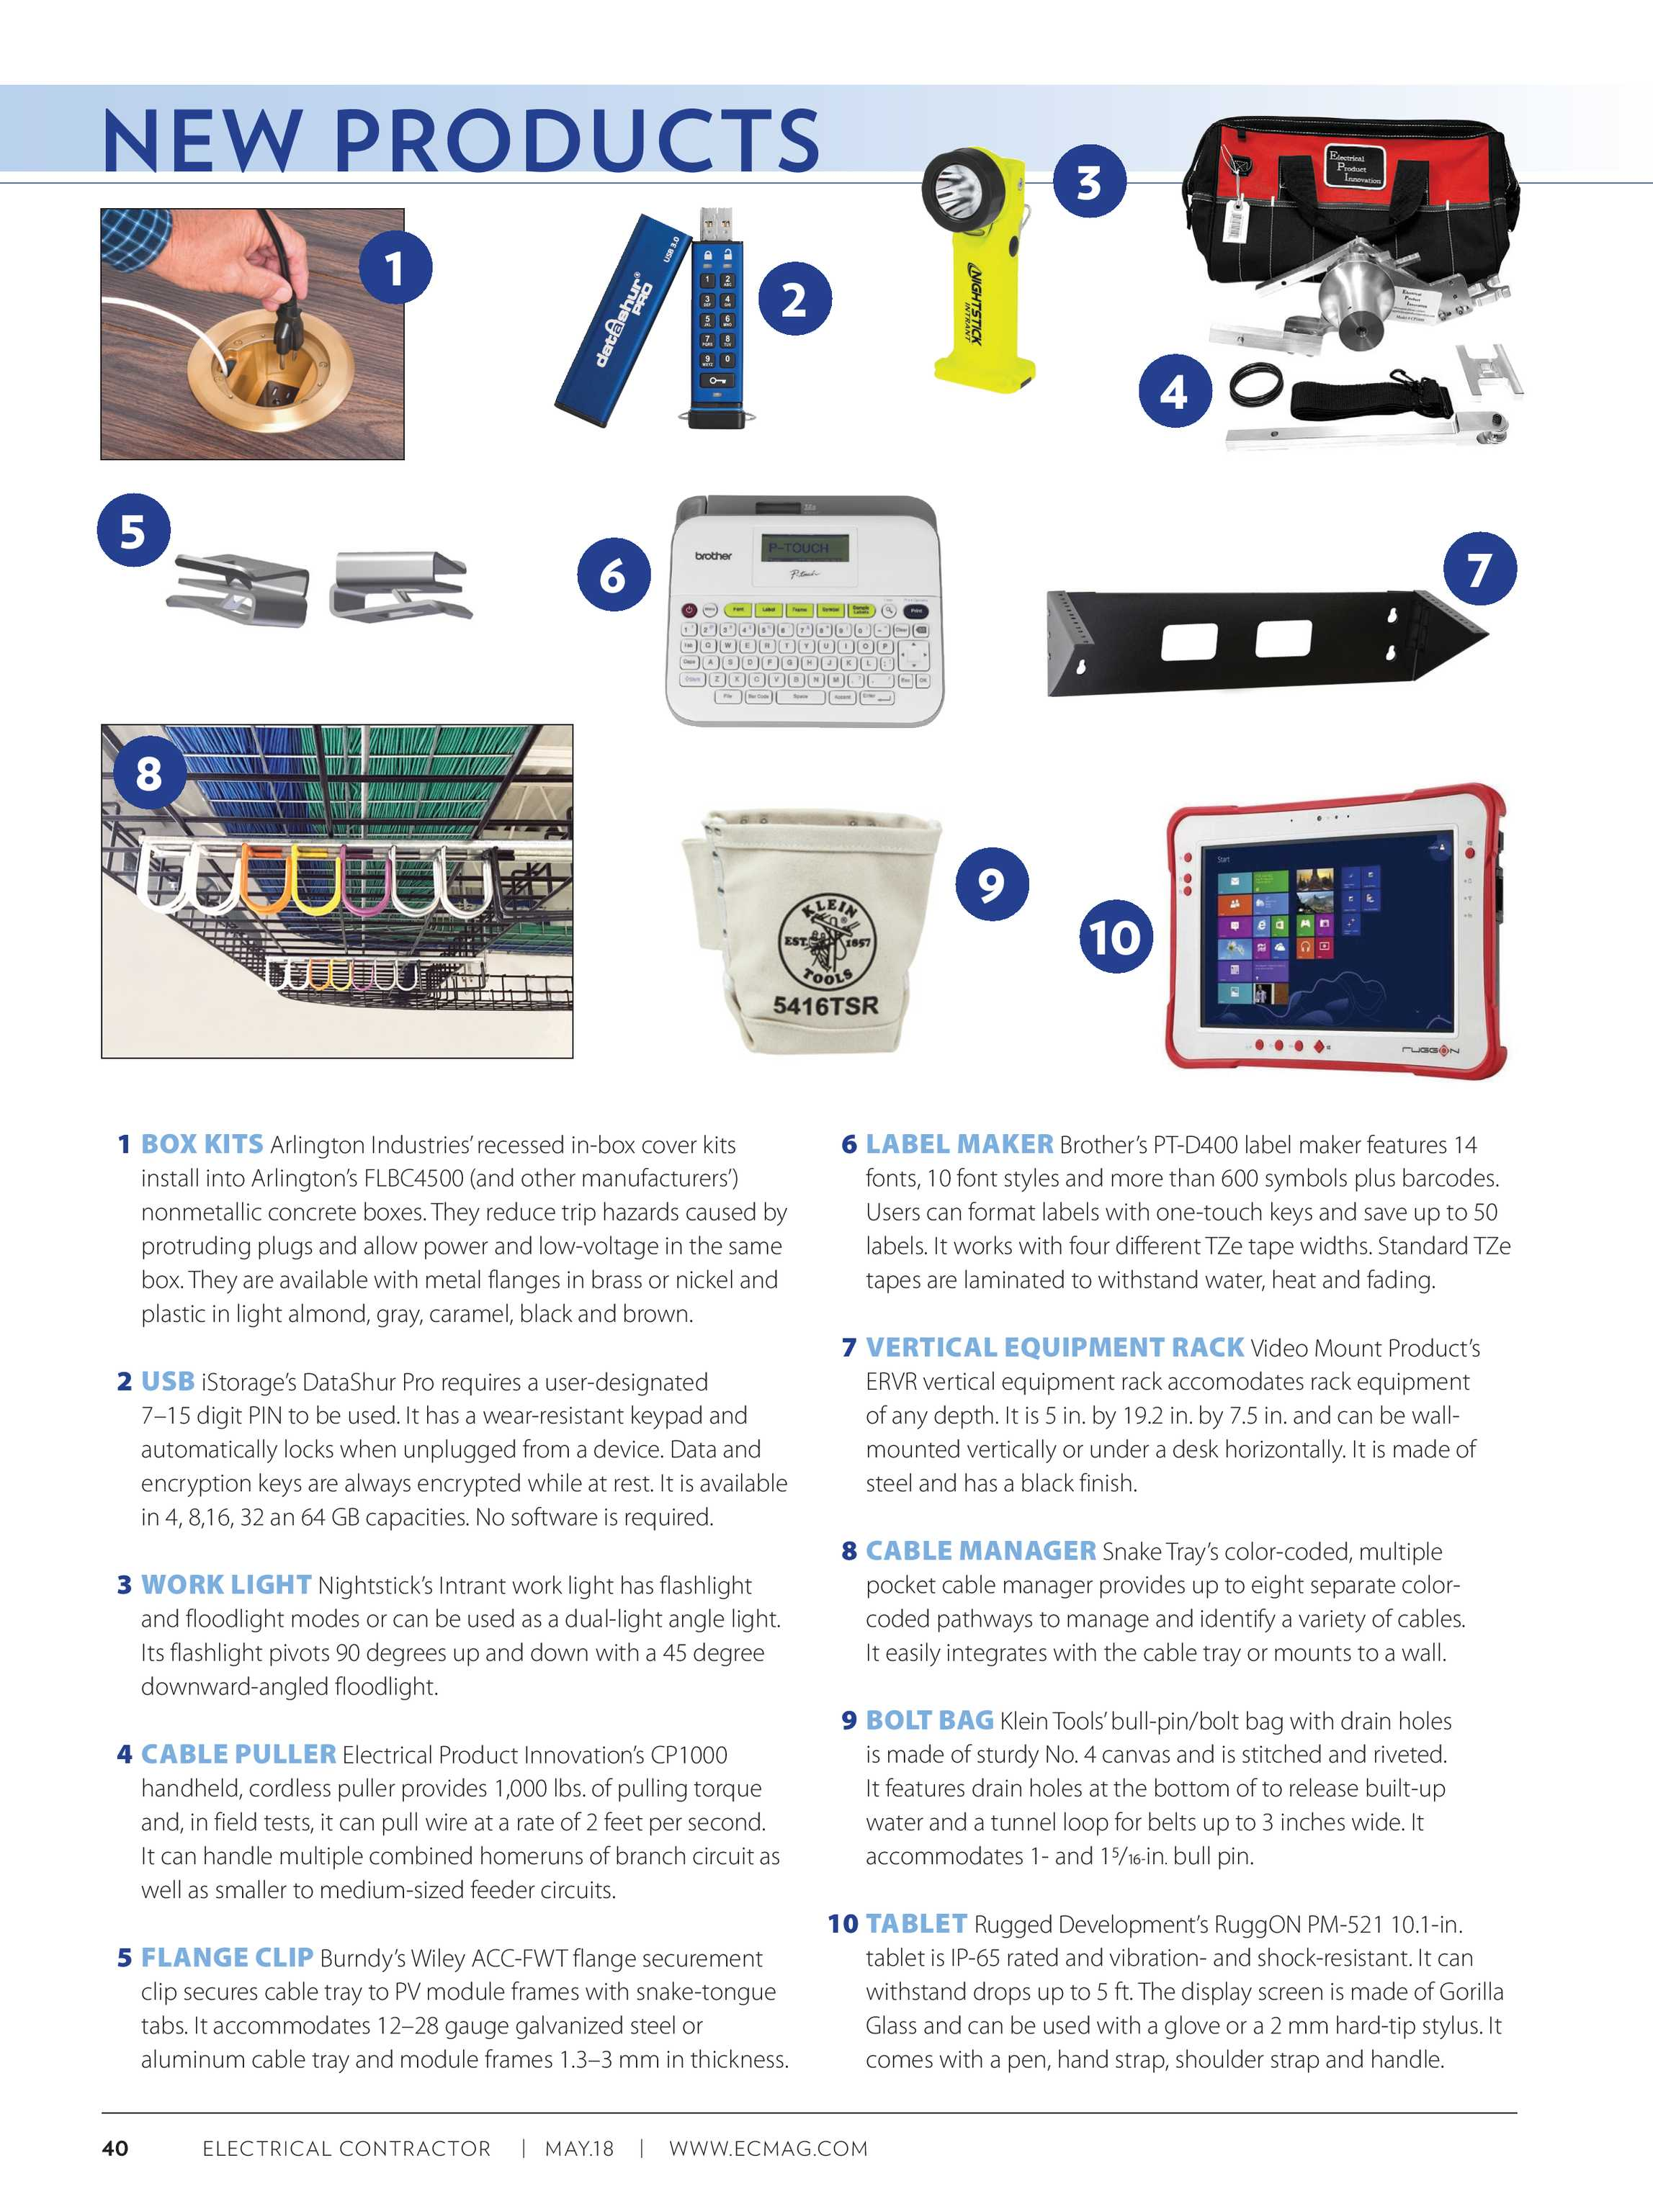 Electrical Contractor - May 2018 - page 40